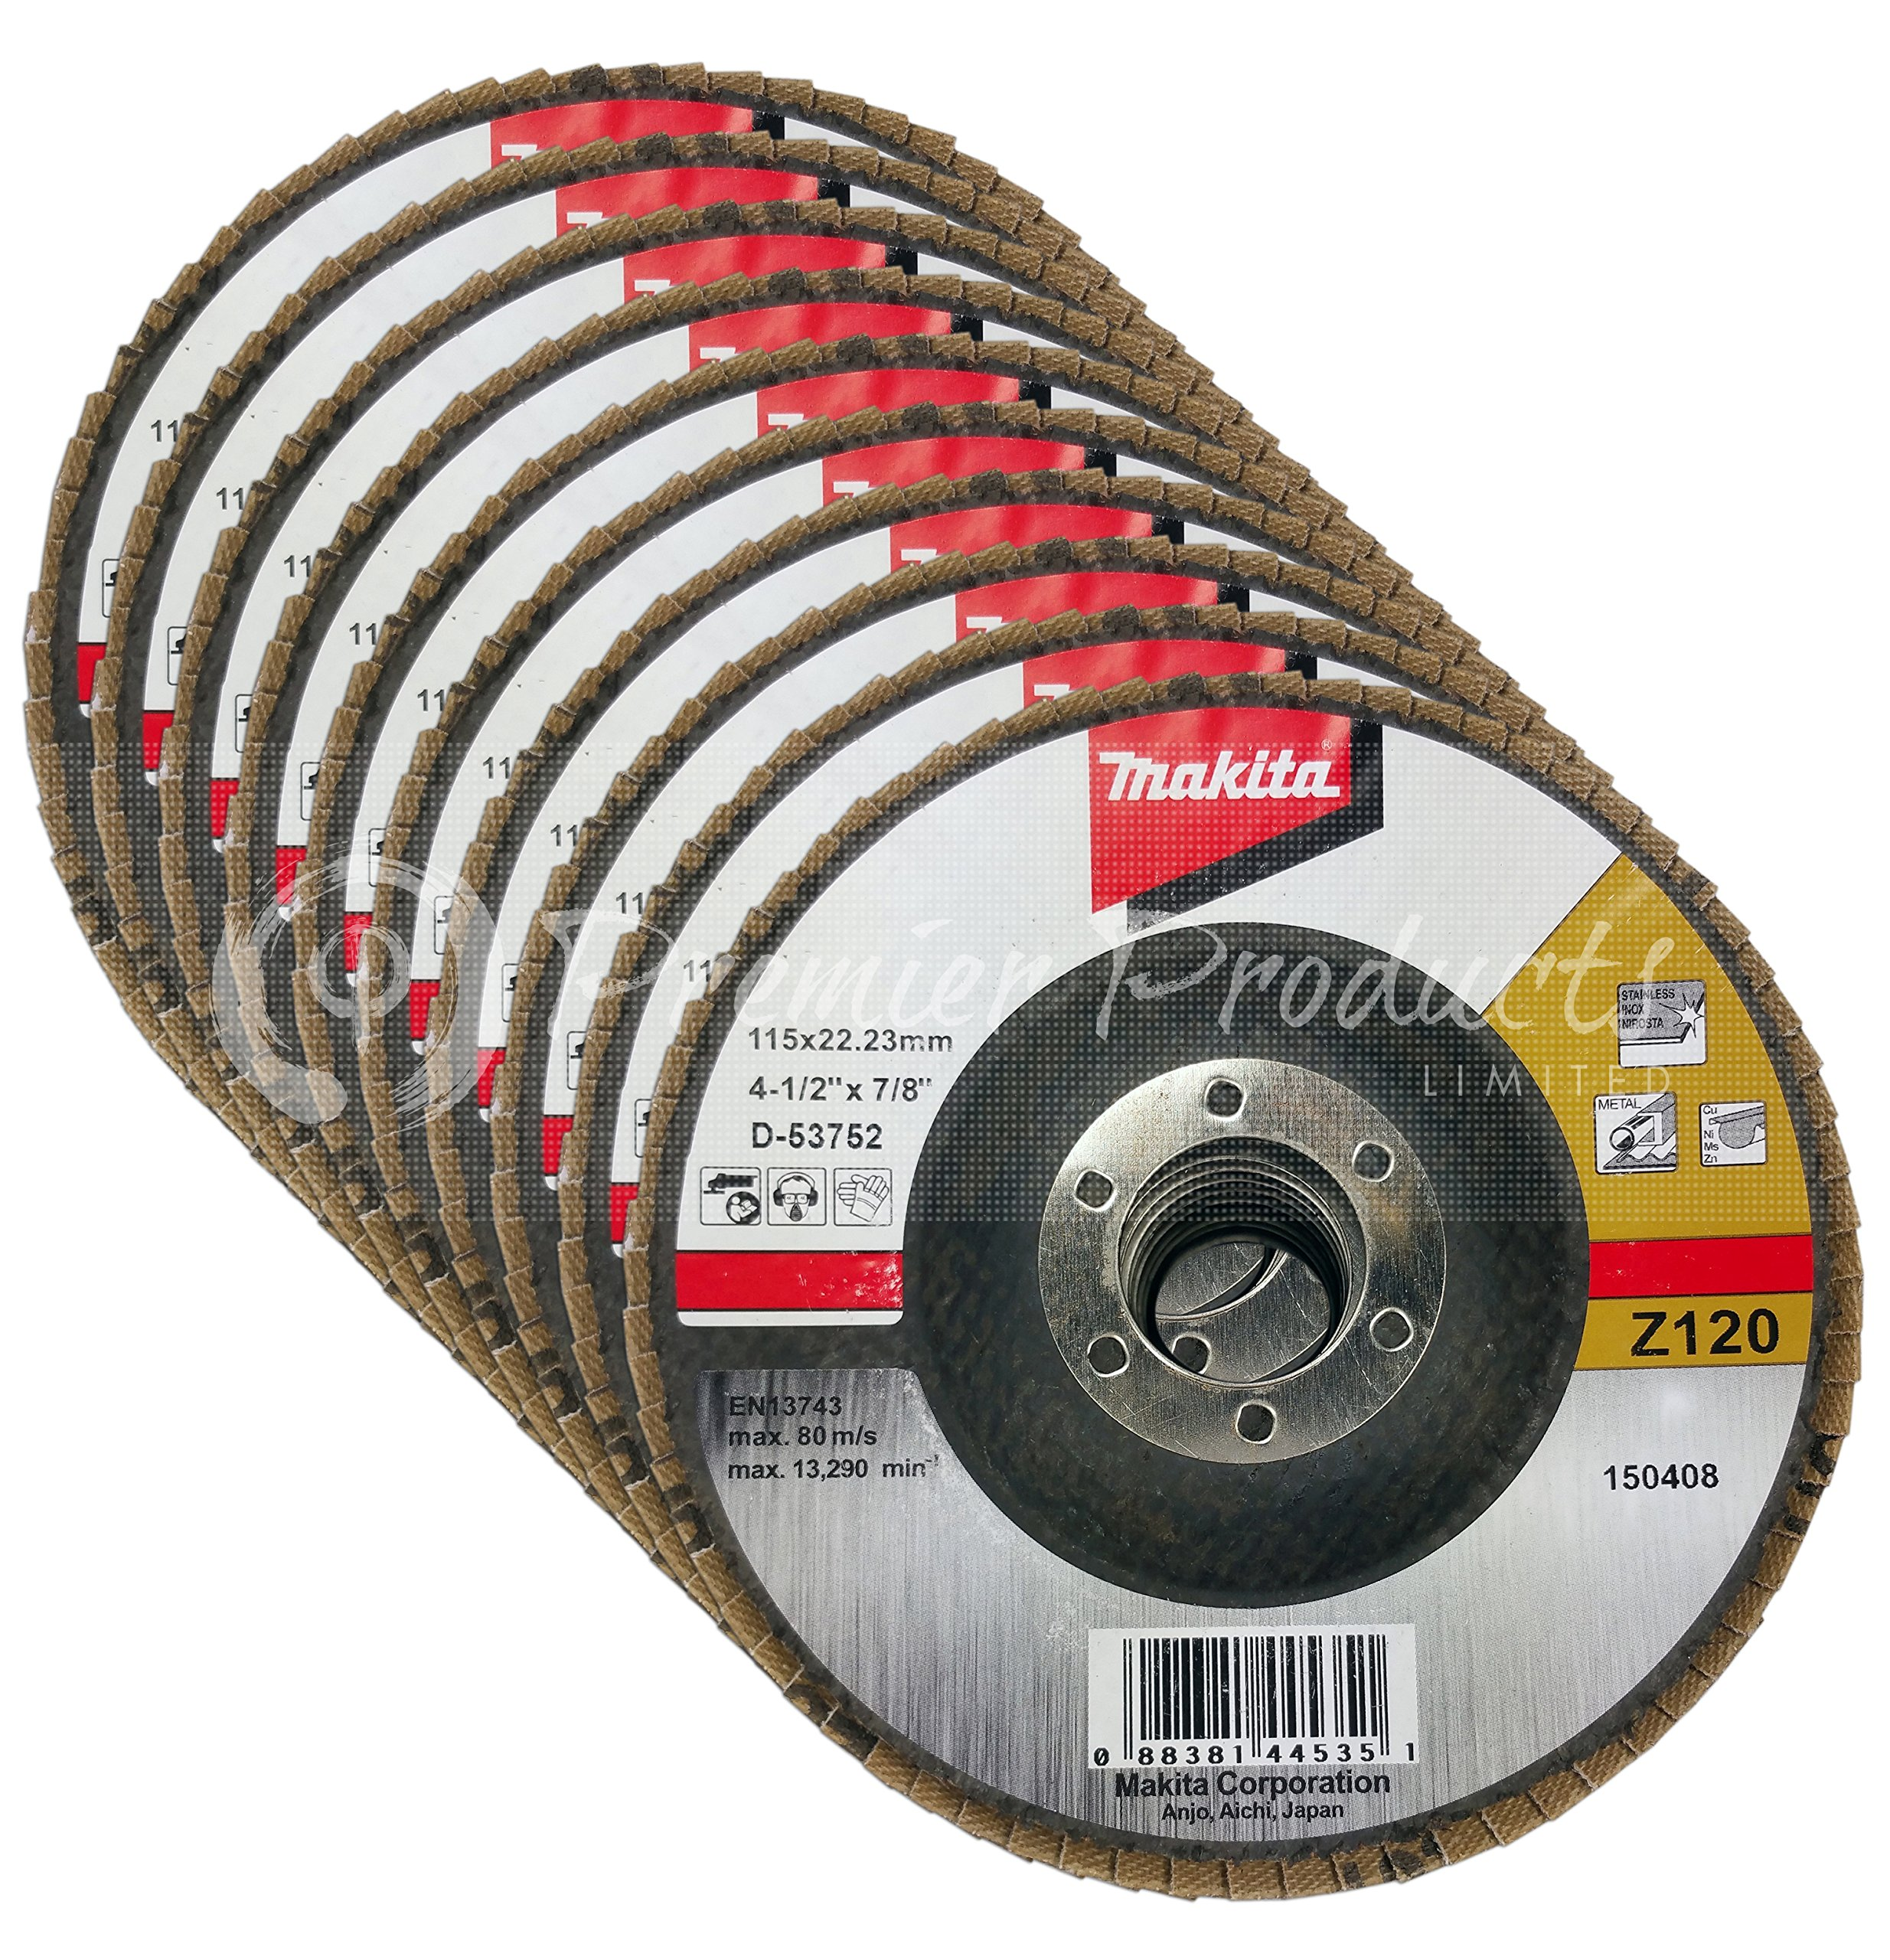 Makita 10 Pack - 120 Grit Flap Disc For Grinders - Fine Conditioning For Metal, Stainless Steel & Non-Ferrous - 4-1/2'' x 7/8-Inch | Z120 Angled